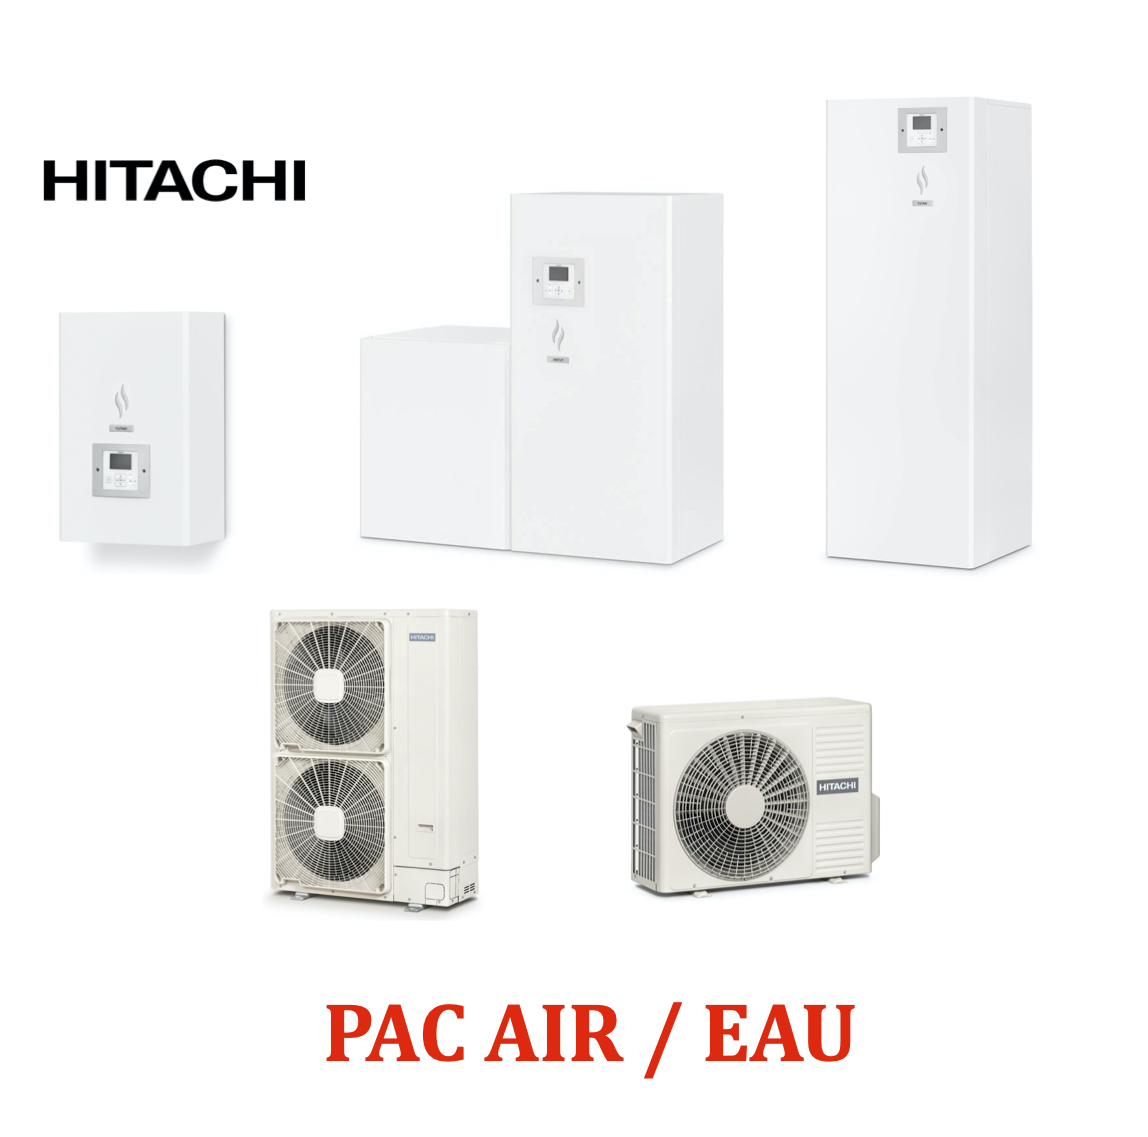 Pac Air/Eau HITACHI